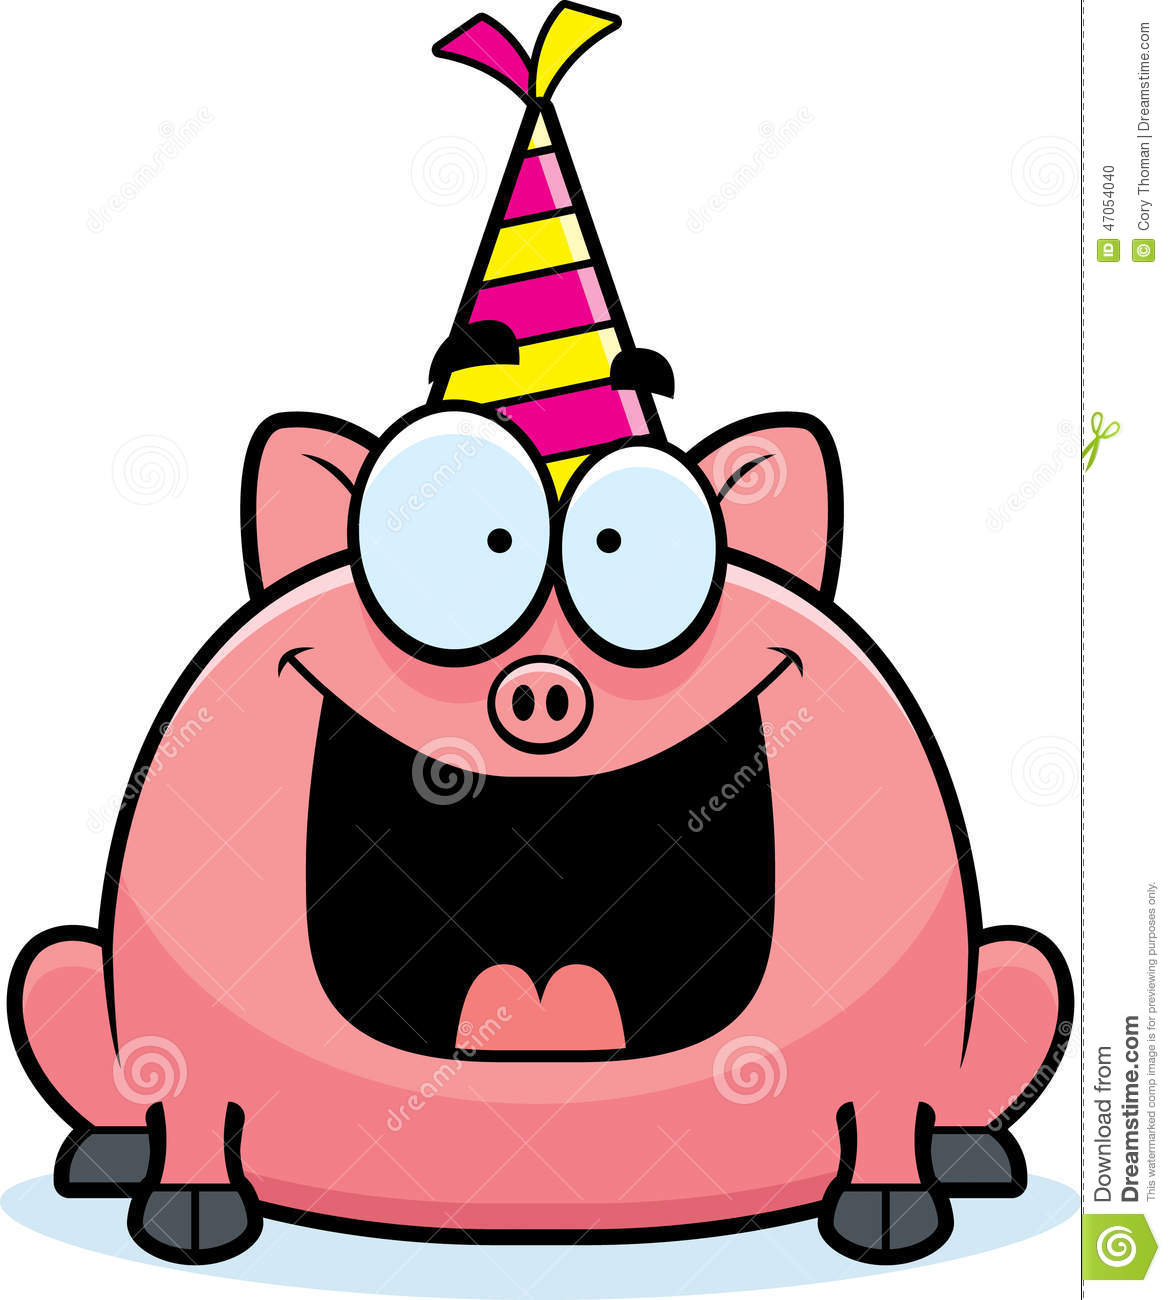 Cartoon Pig Birthday Party Stock Vector - Image: 47054040